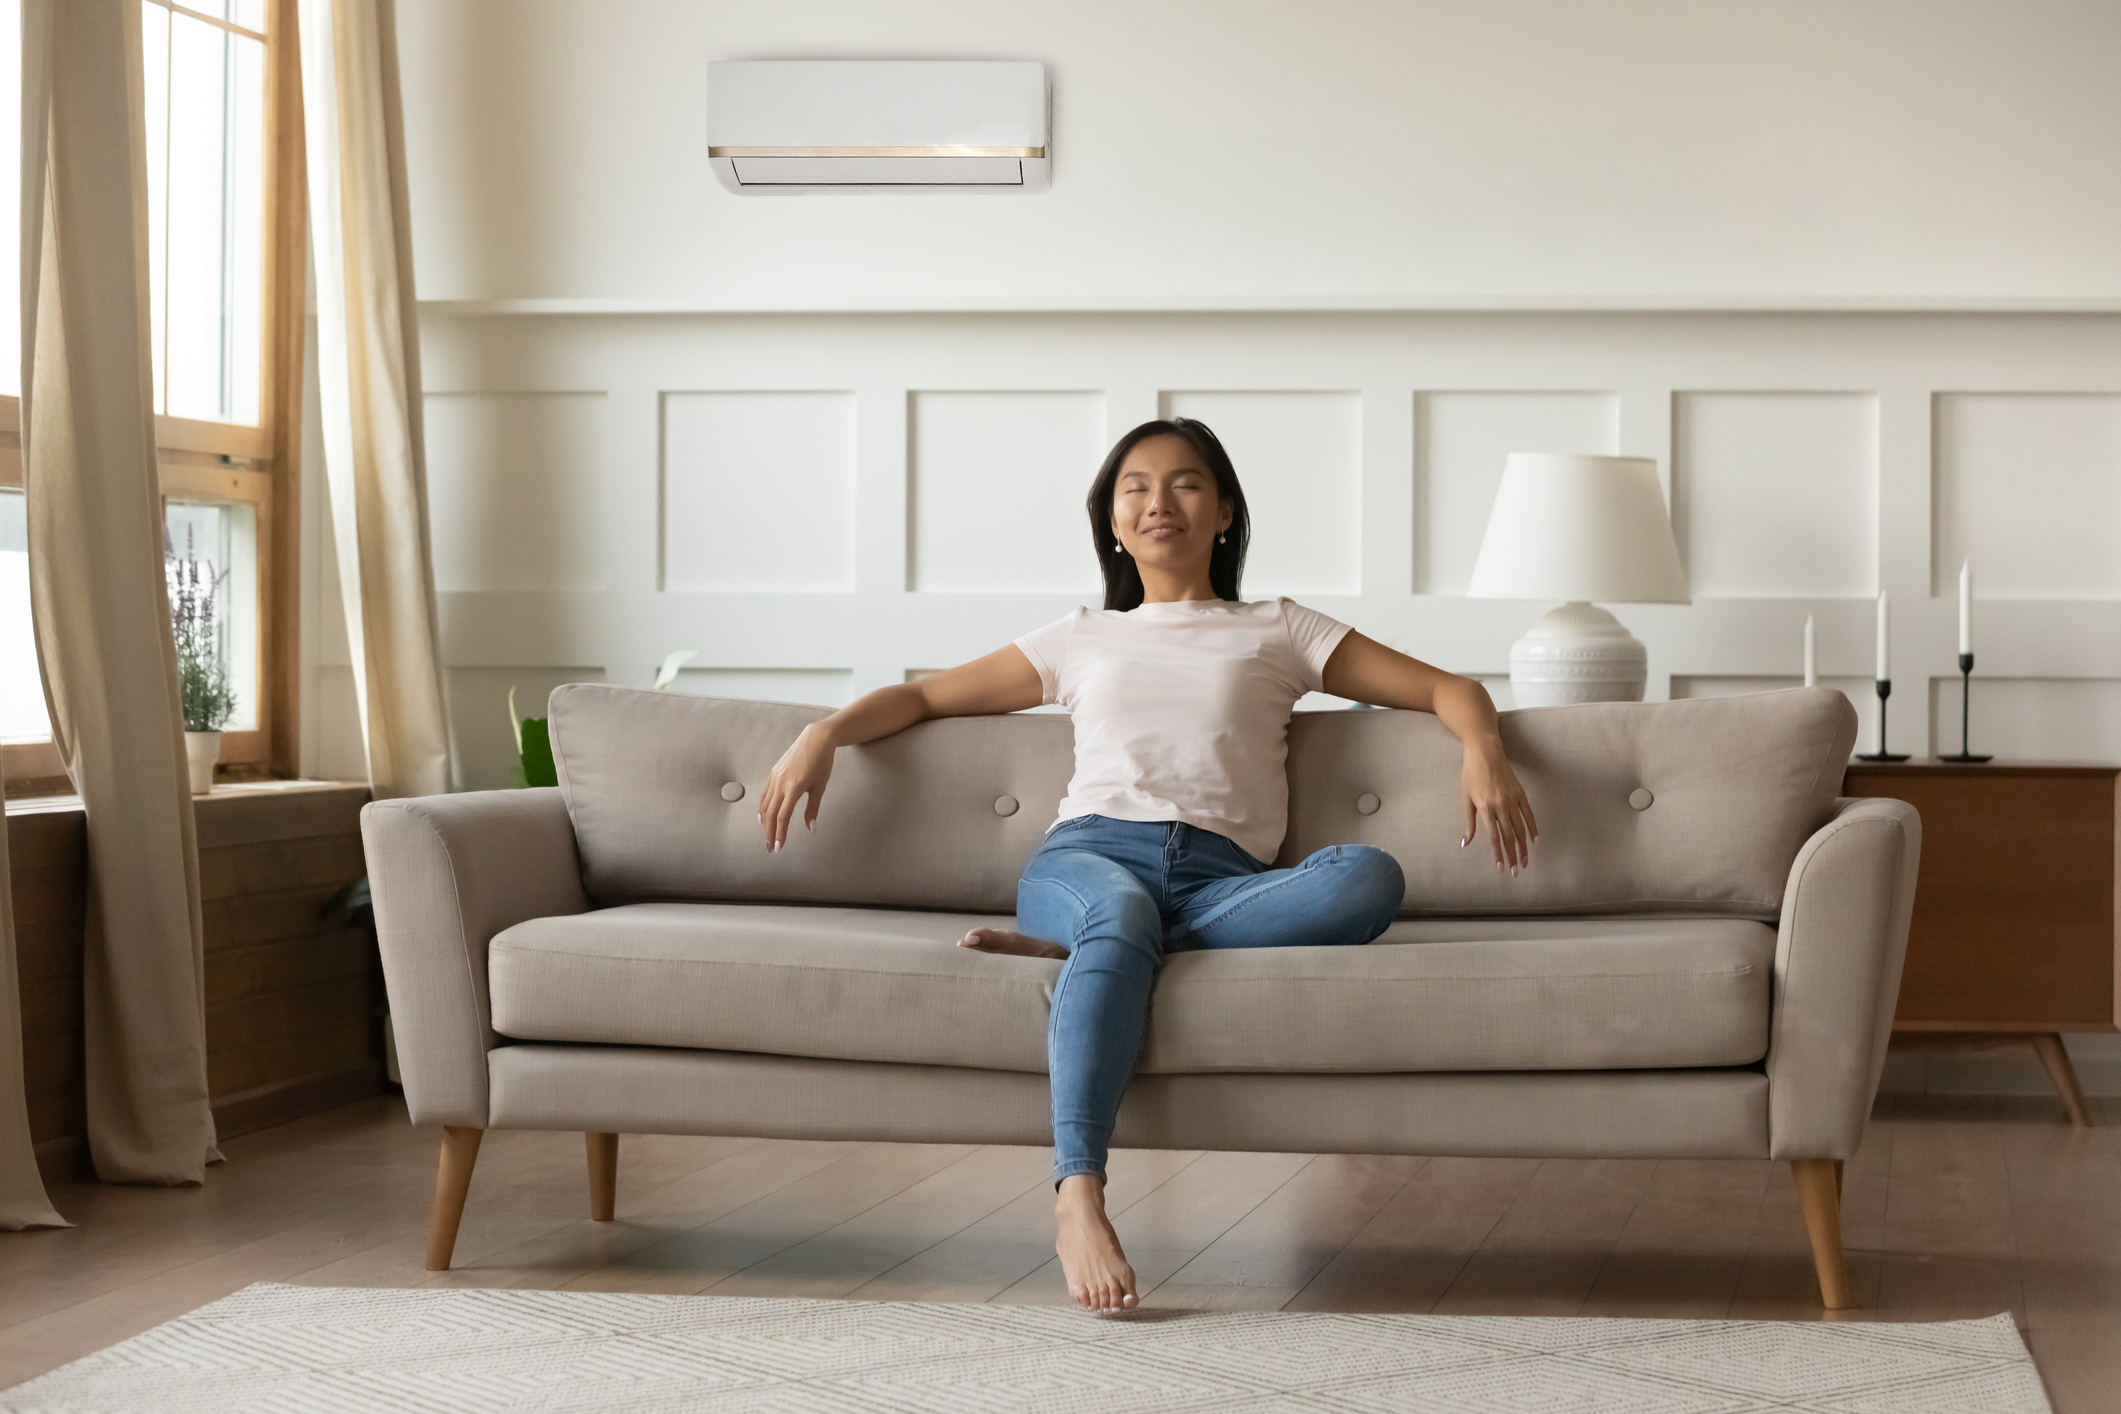 12 surprising ways air conditioning affects us